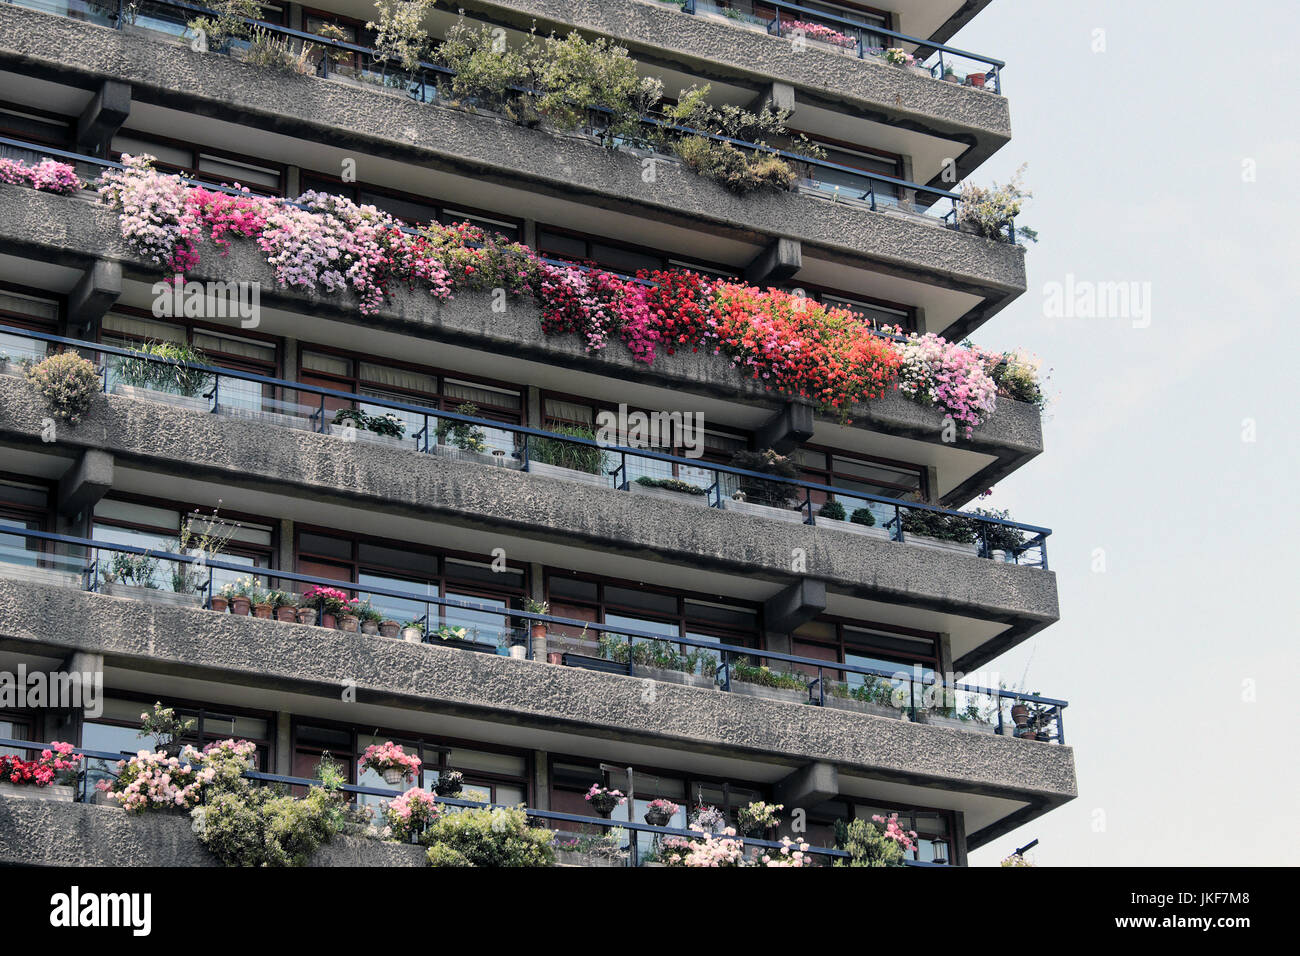 Rows of colourful balcony plants geraniums growing in gardens outside Barbican Estate flats in The City of London - Stock Image